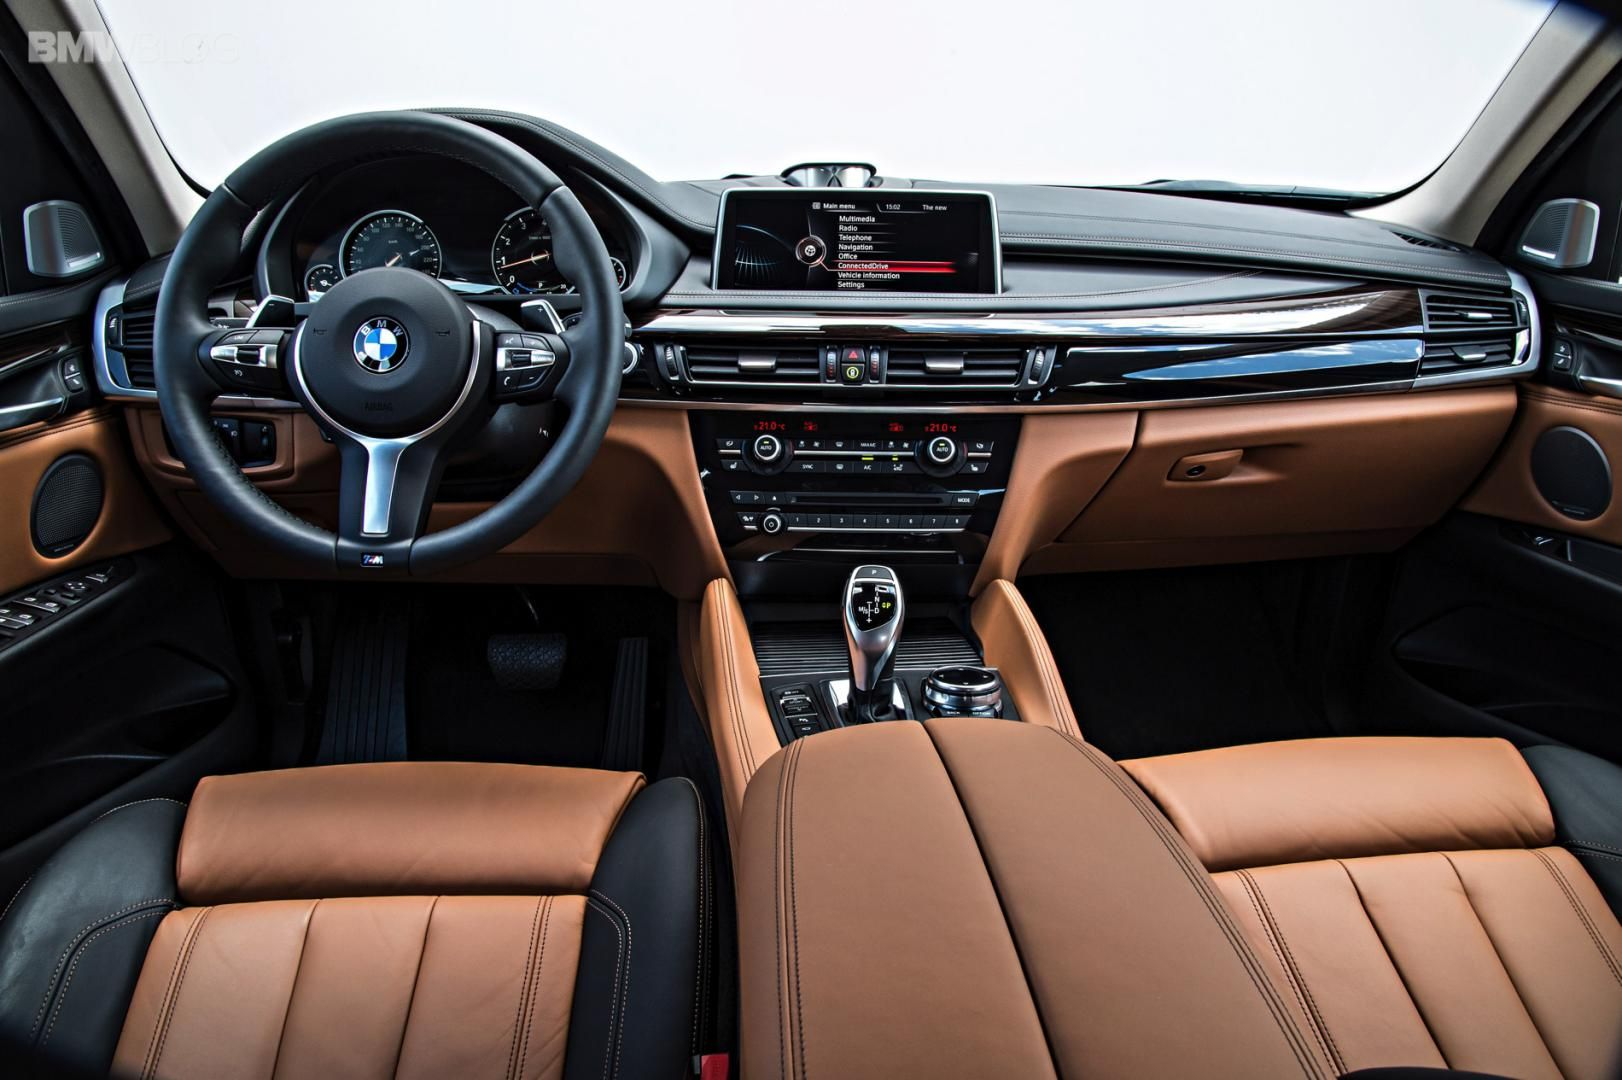 2017 Bmw X6 Interior Dashboard